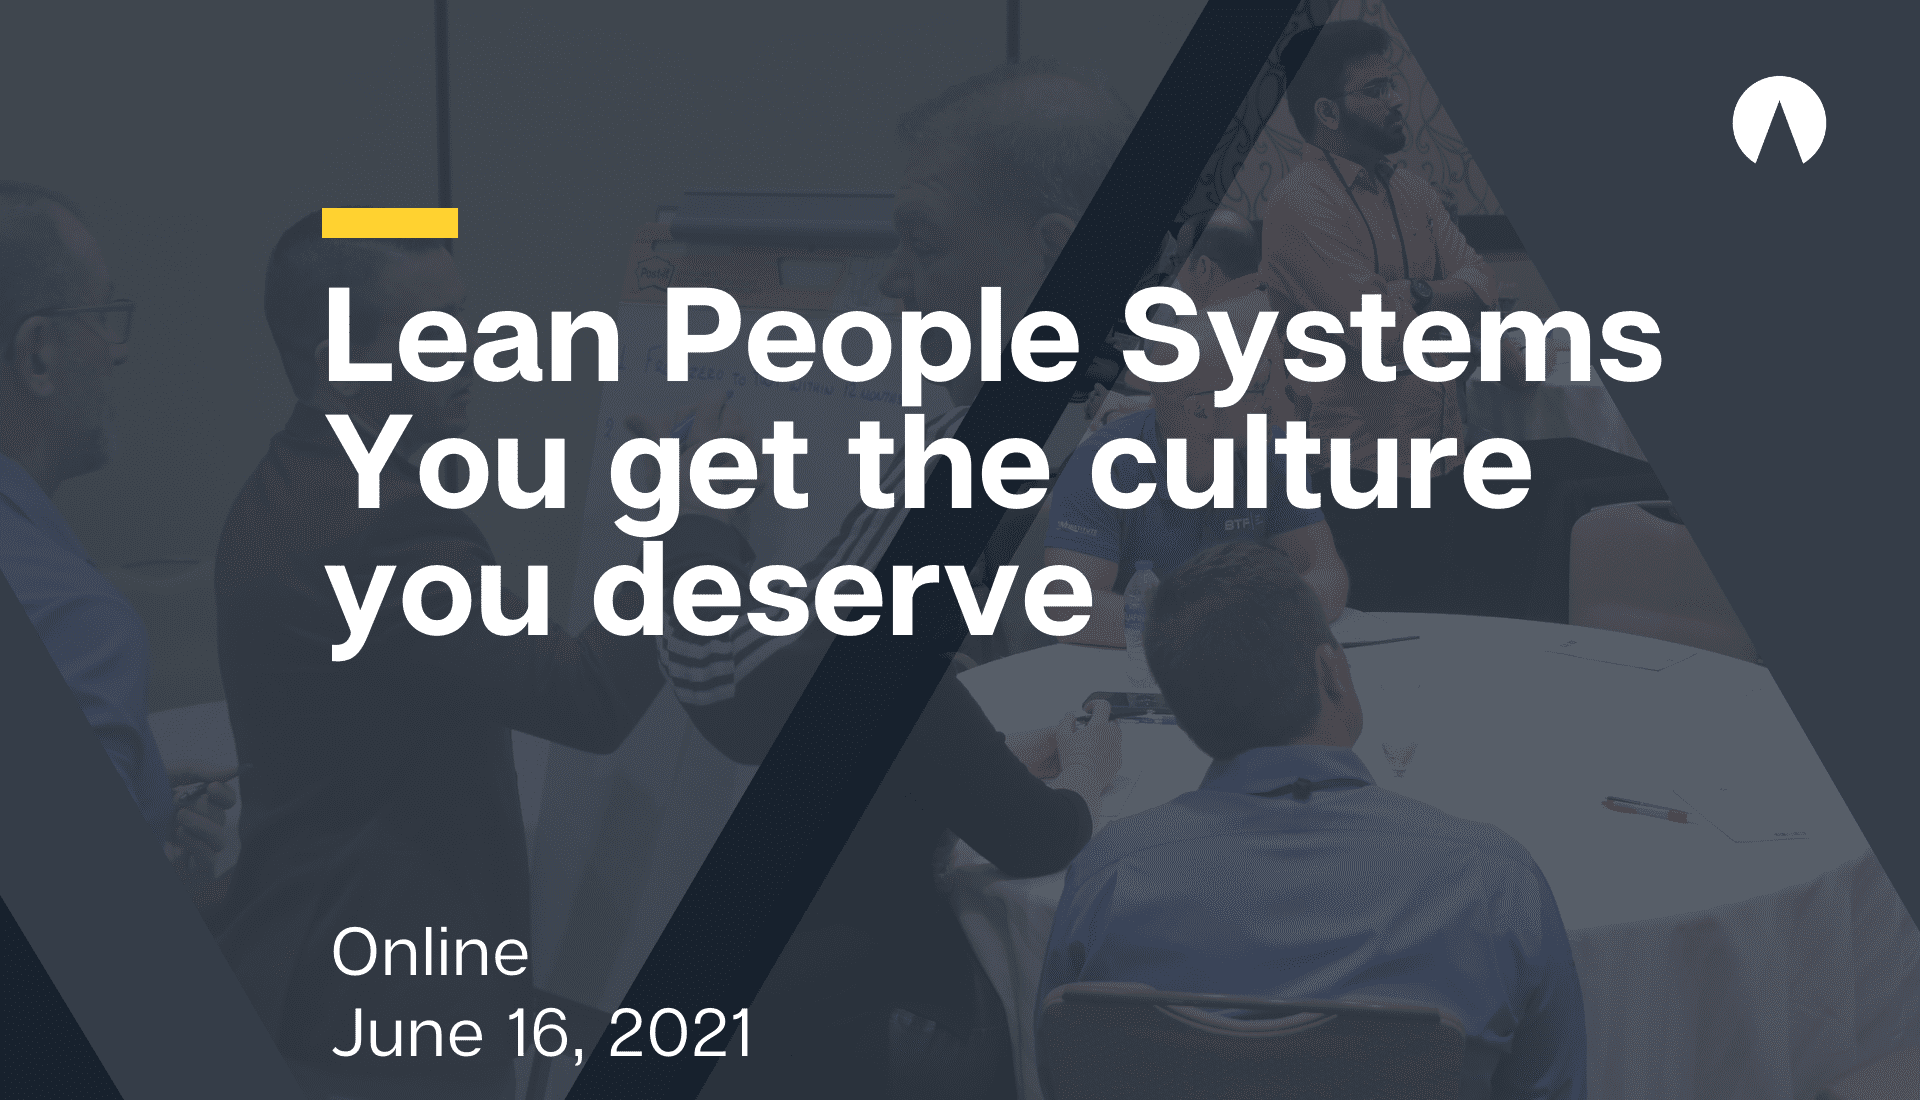 Lean People Systems